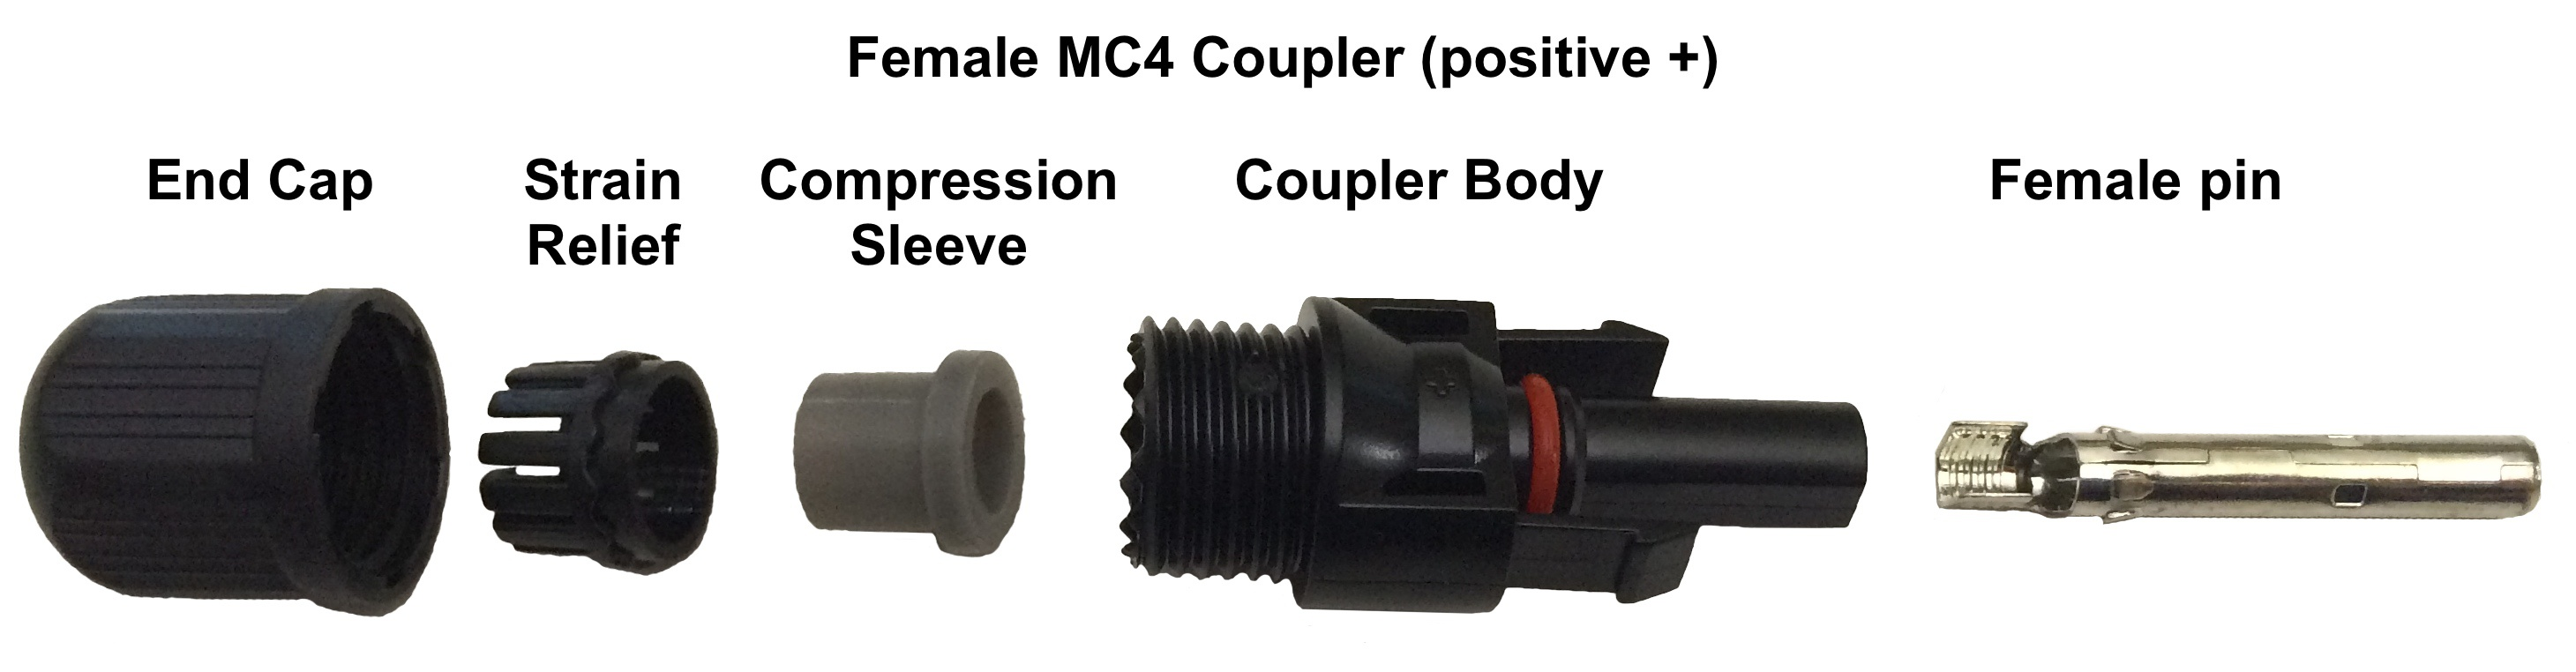 MC4 Female Connector - MC4 Crimp Connectors - Bulk Female - Pack of 20 -Bulk MC4 Crimp Connectors - 20 FEMALE connectors per bag - con-ele, connectors - MC4 Female Connector